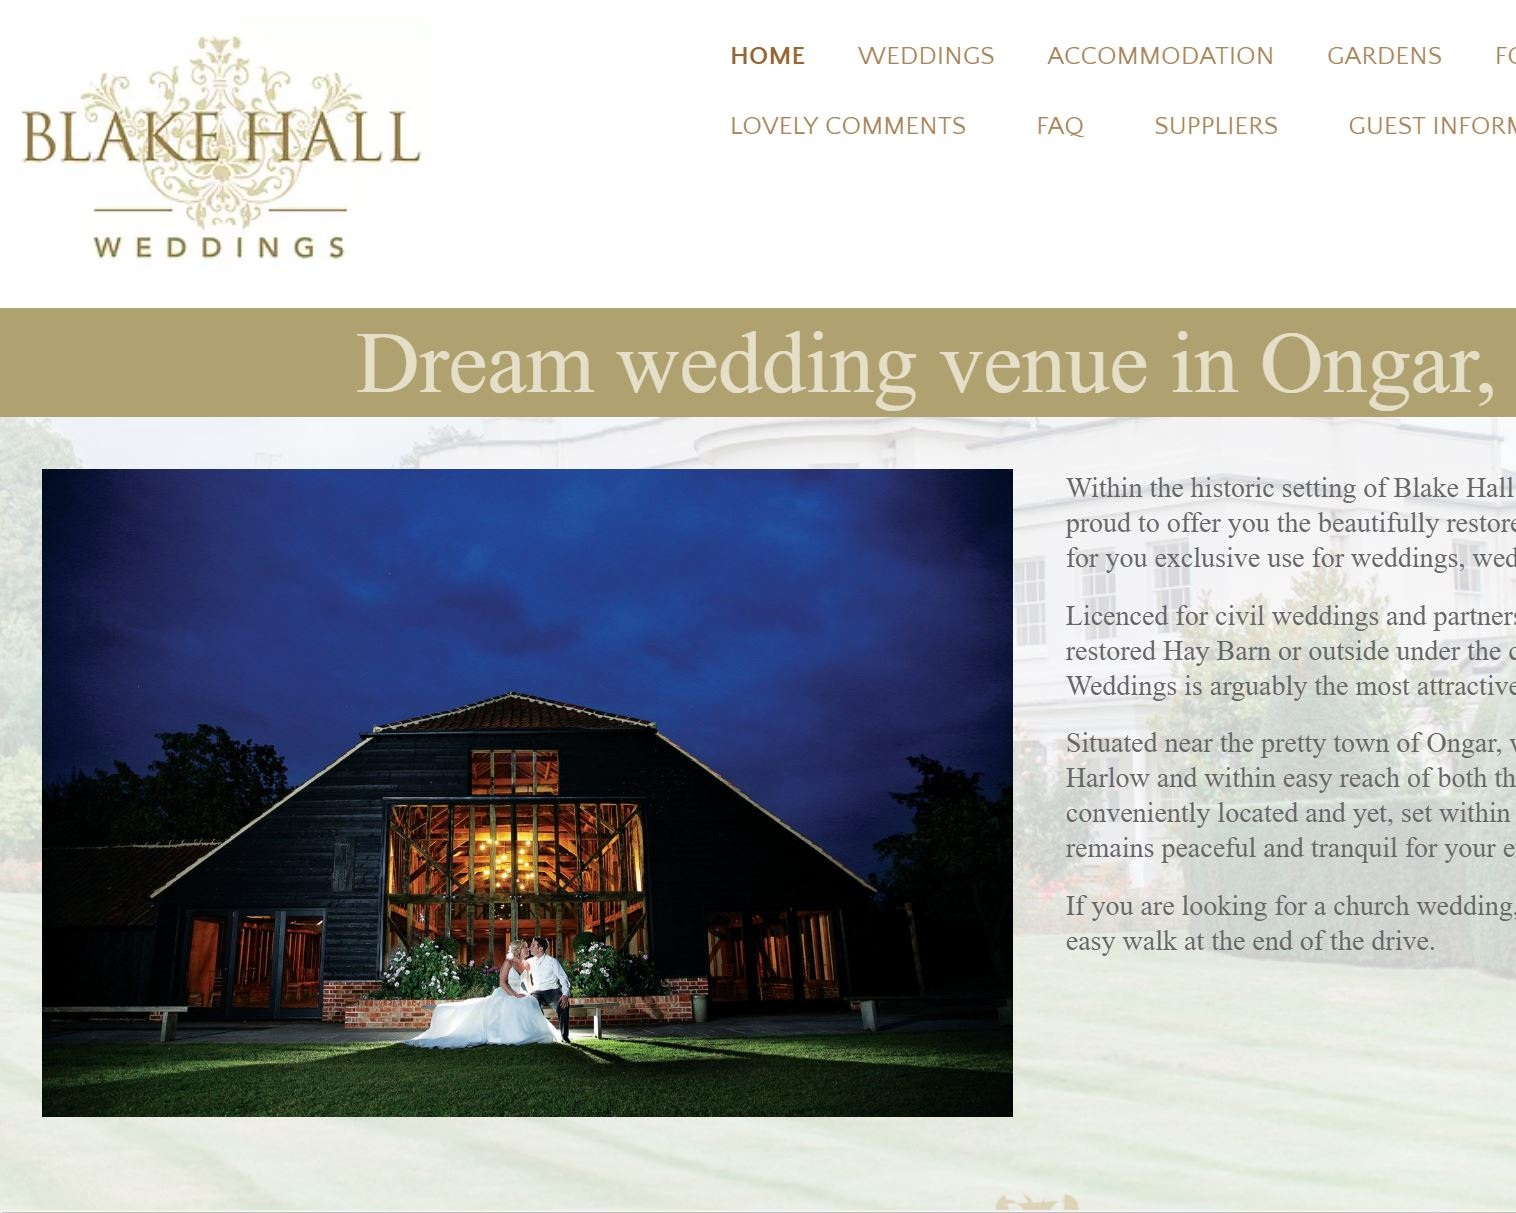 Blake Hall - Within the historic setting of Blake Hall and its stunning private gardens, we are proud to offer you the beautifully restored 17th century barns and surrounding areas for you exclusive use for weddings, wedding receptions and other special occasions.